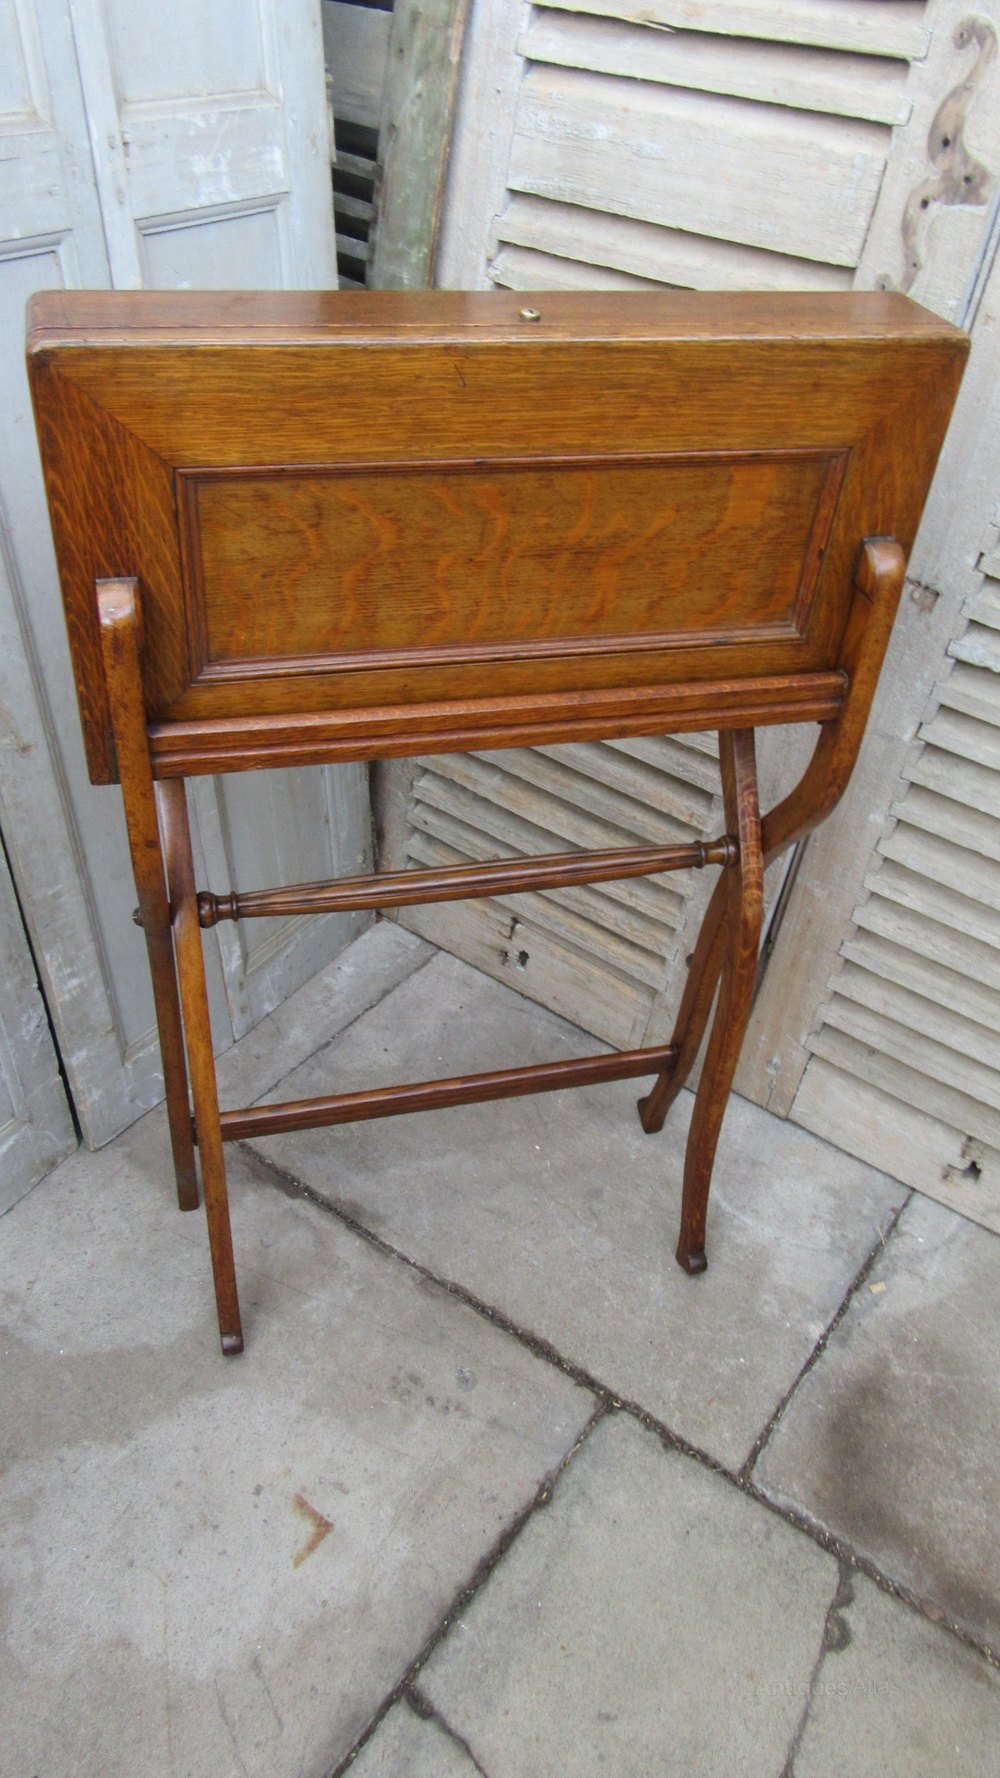 Antique Folding Campaign Table / Desk ... - Antique Folding Campaign Table / Desk - Antiques Atlas